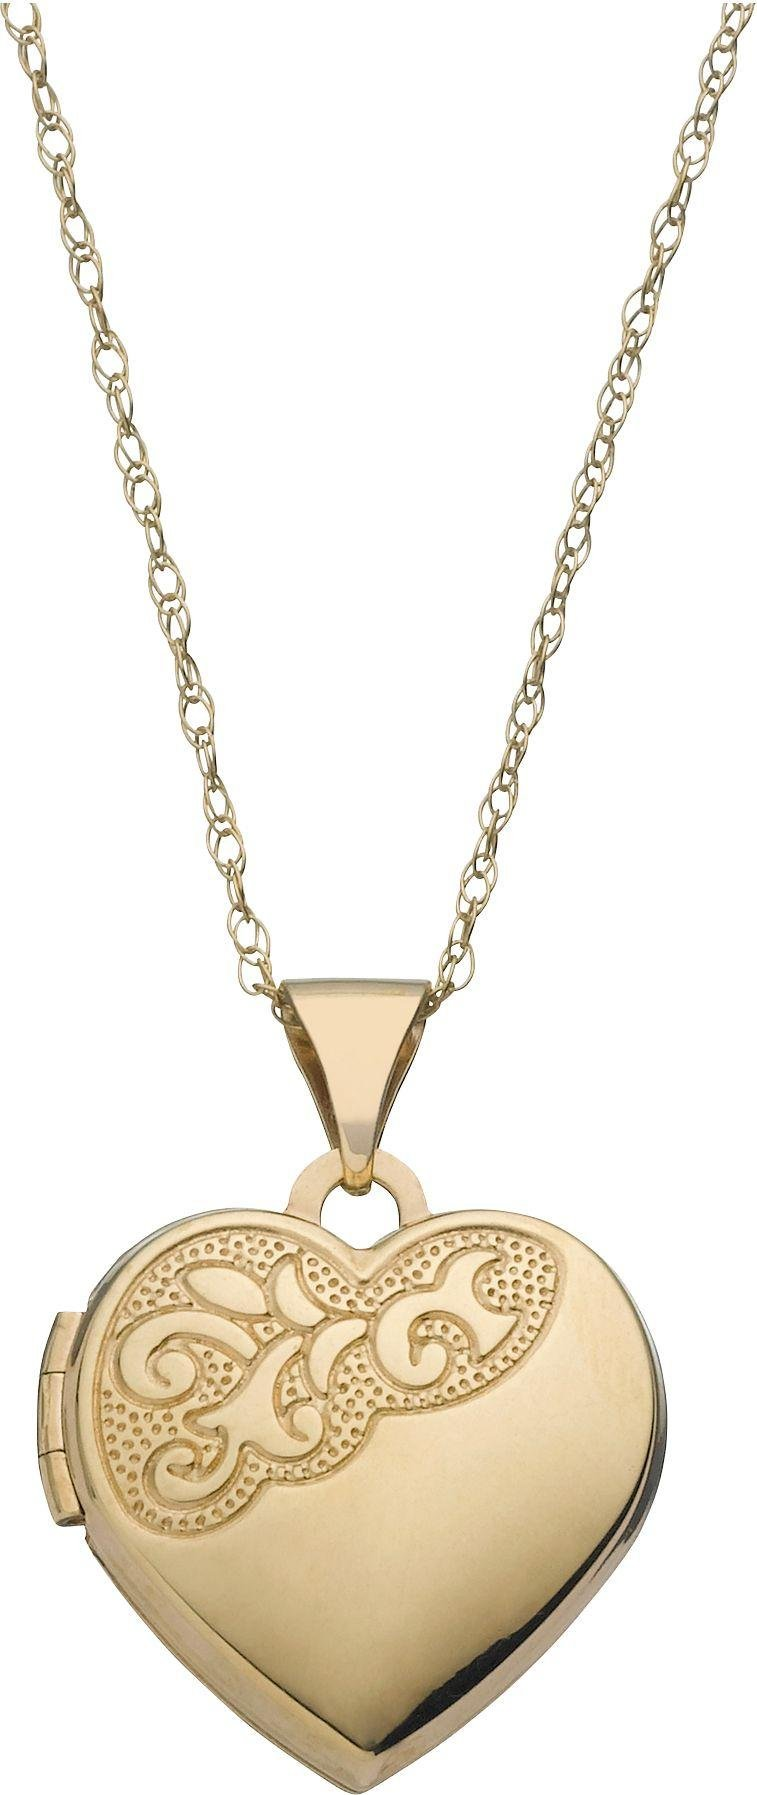 Moon & Back 9ct Gold Heart Locket Review